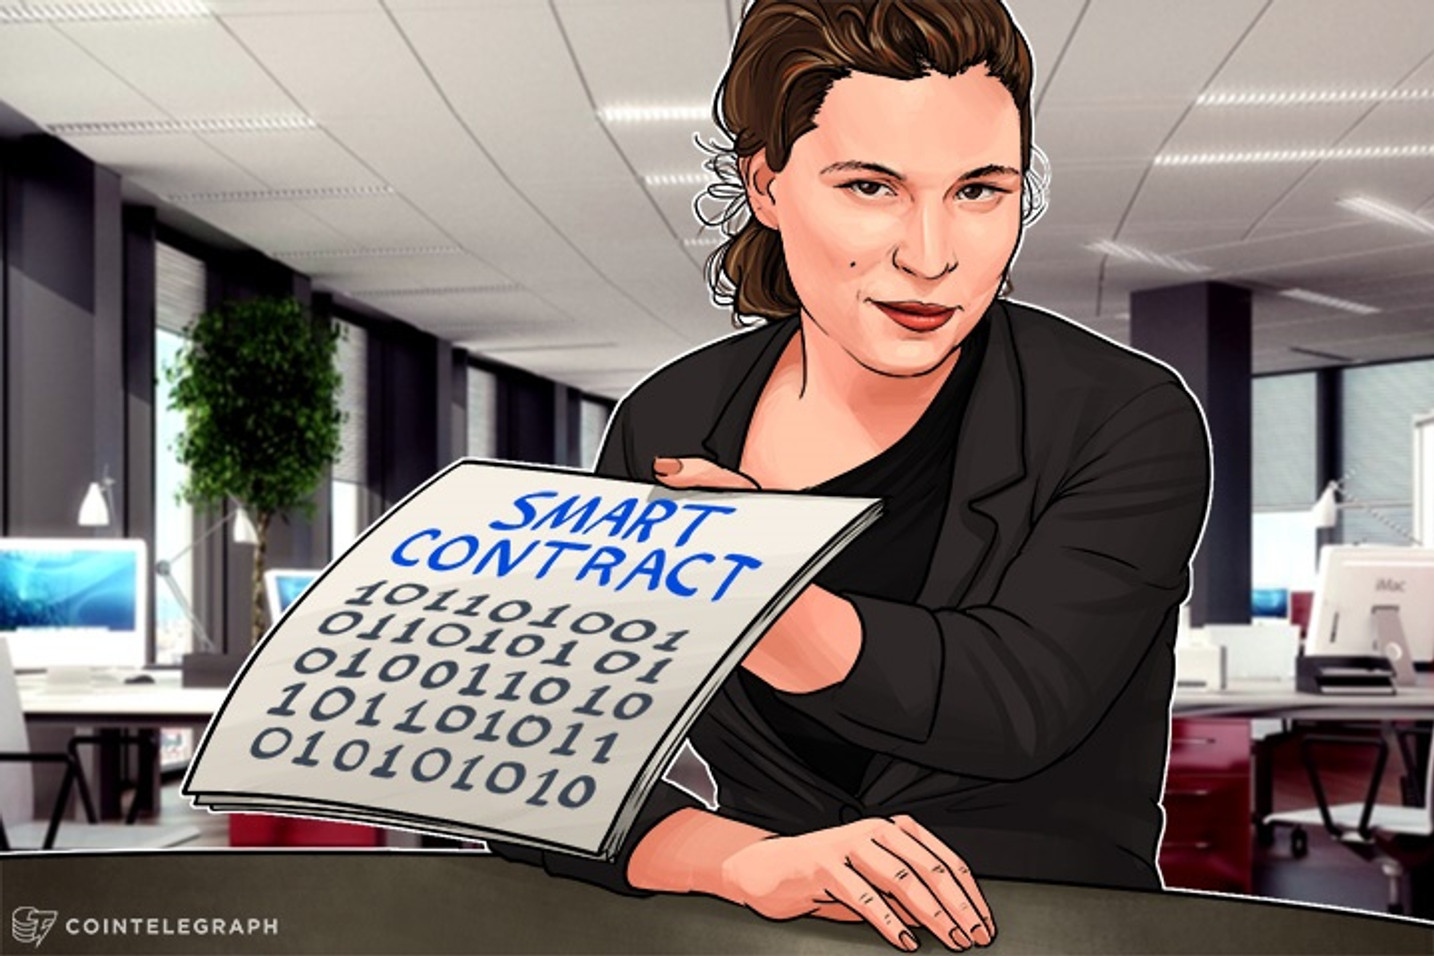 Susanne Tarkowski on How Smart Contracts Can Add Value to Your Business